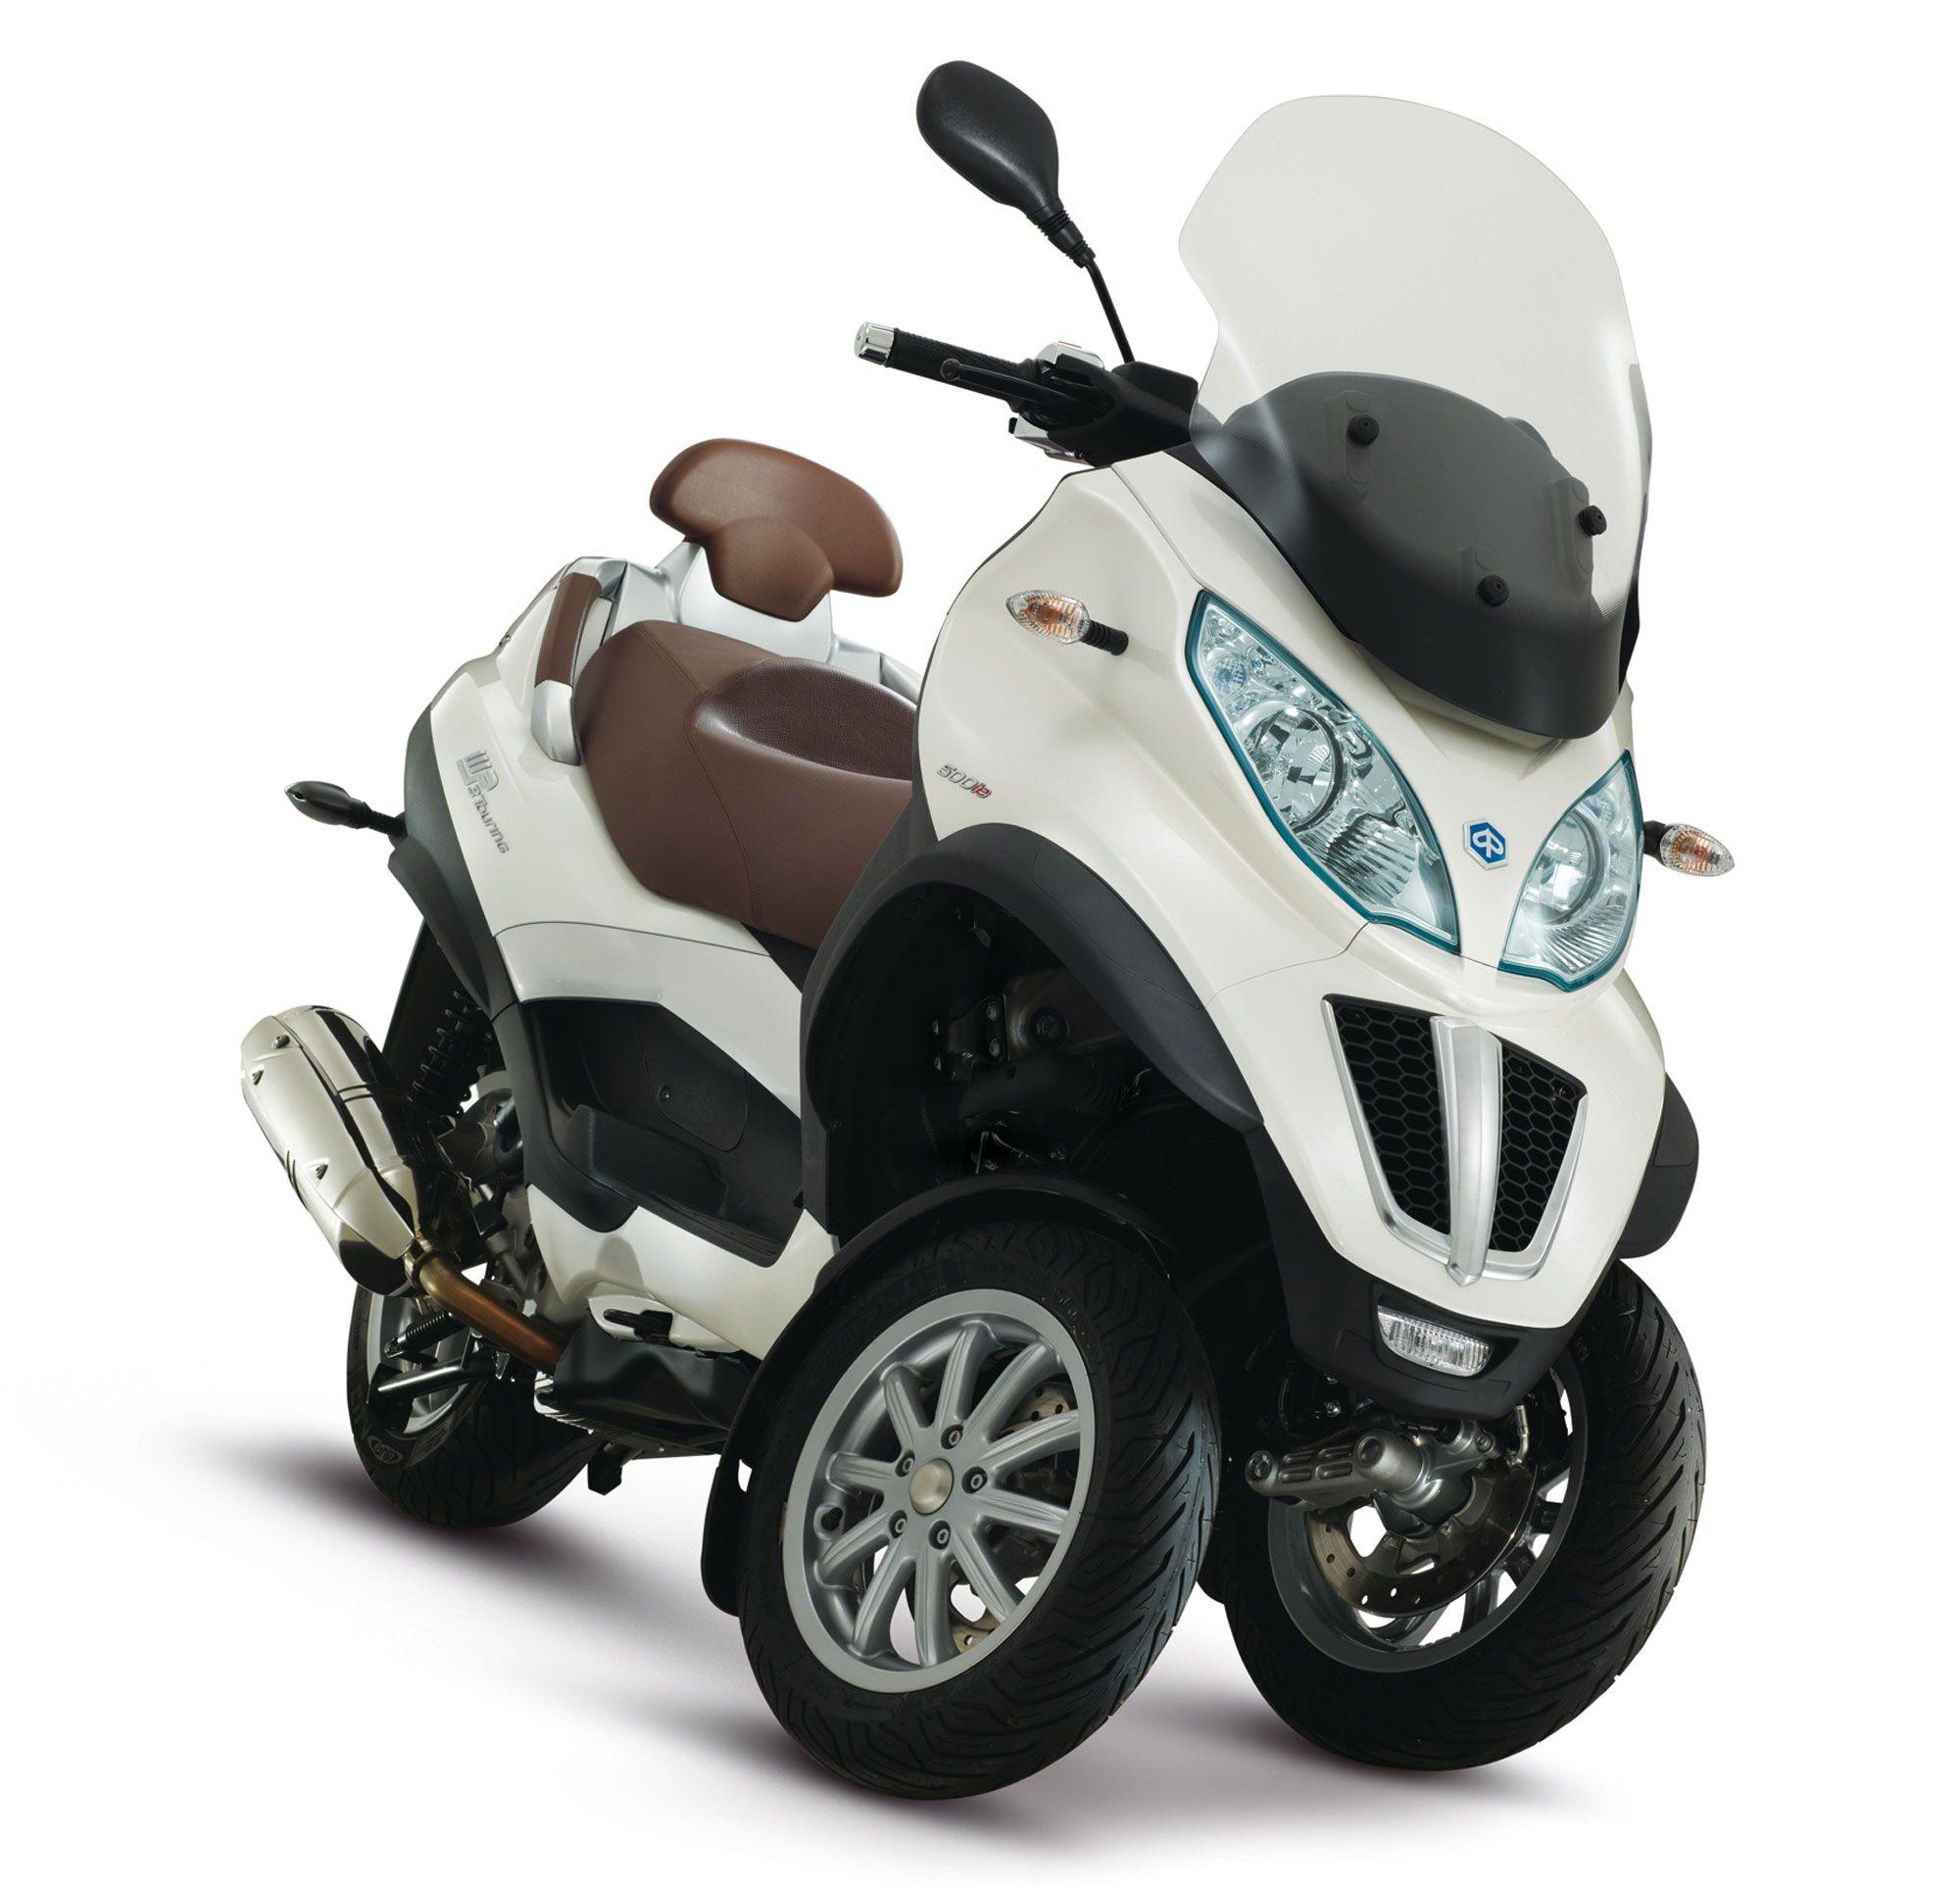 Piaggio MP3 400 2011 images #120679